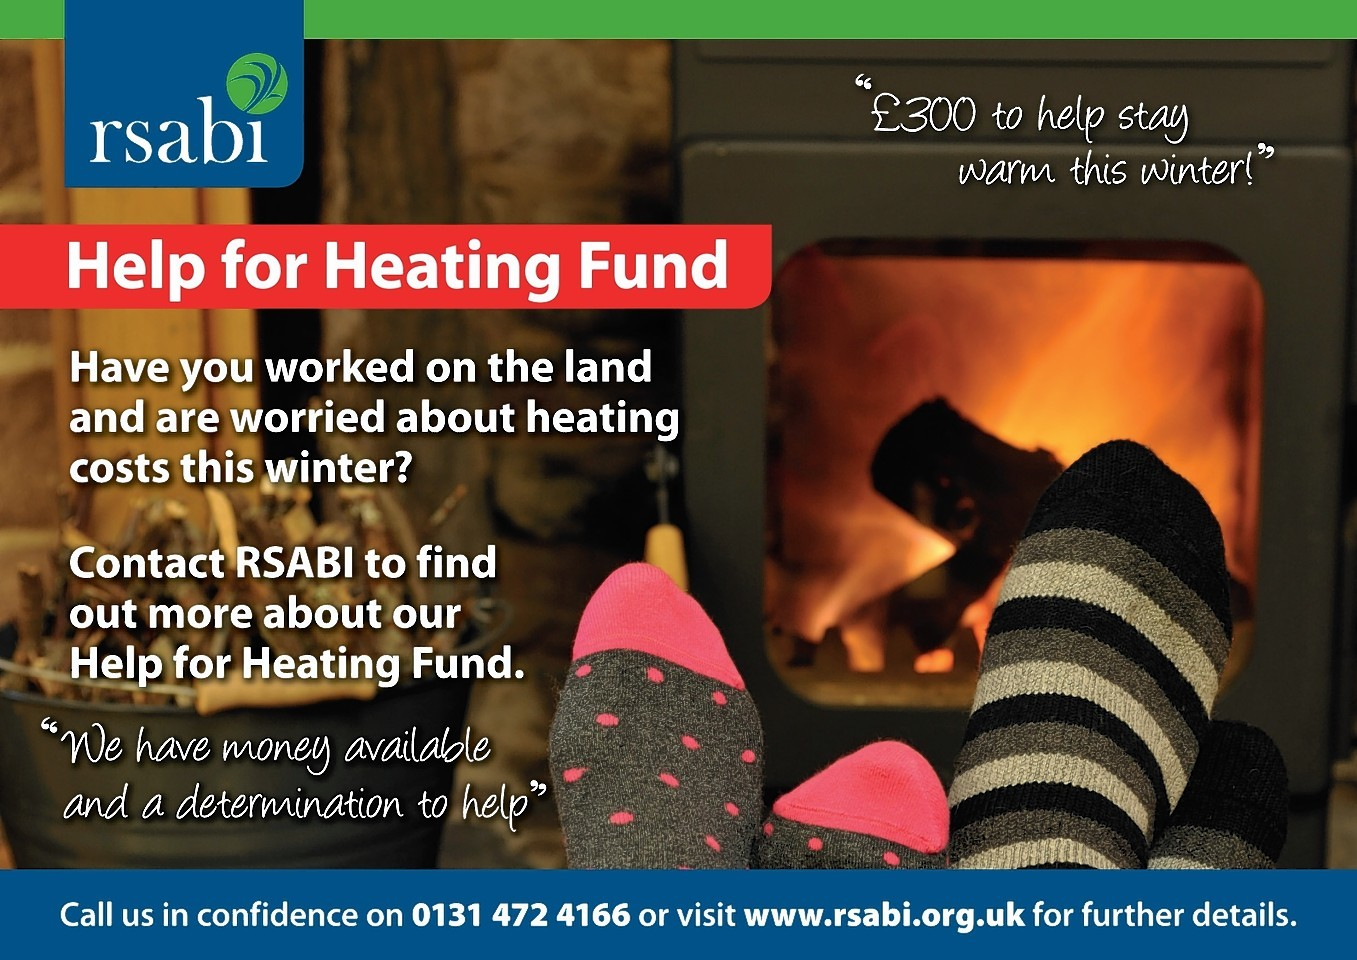 RSABI has opened a winter heating fund